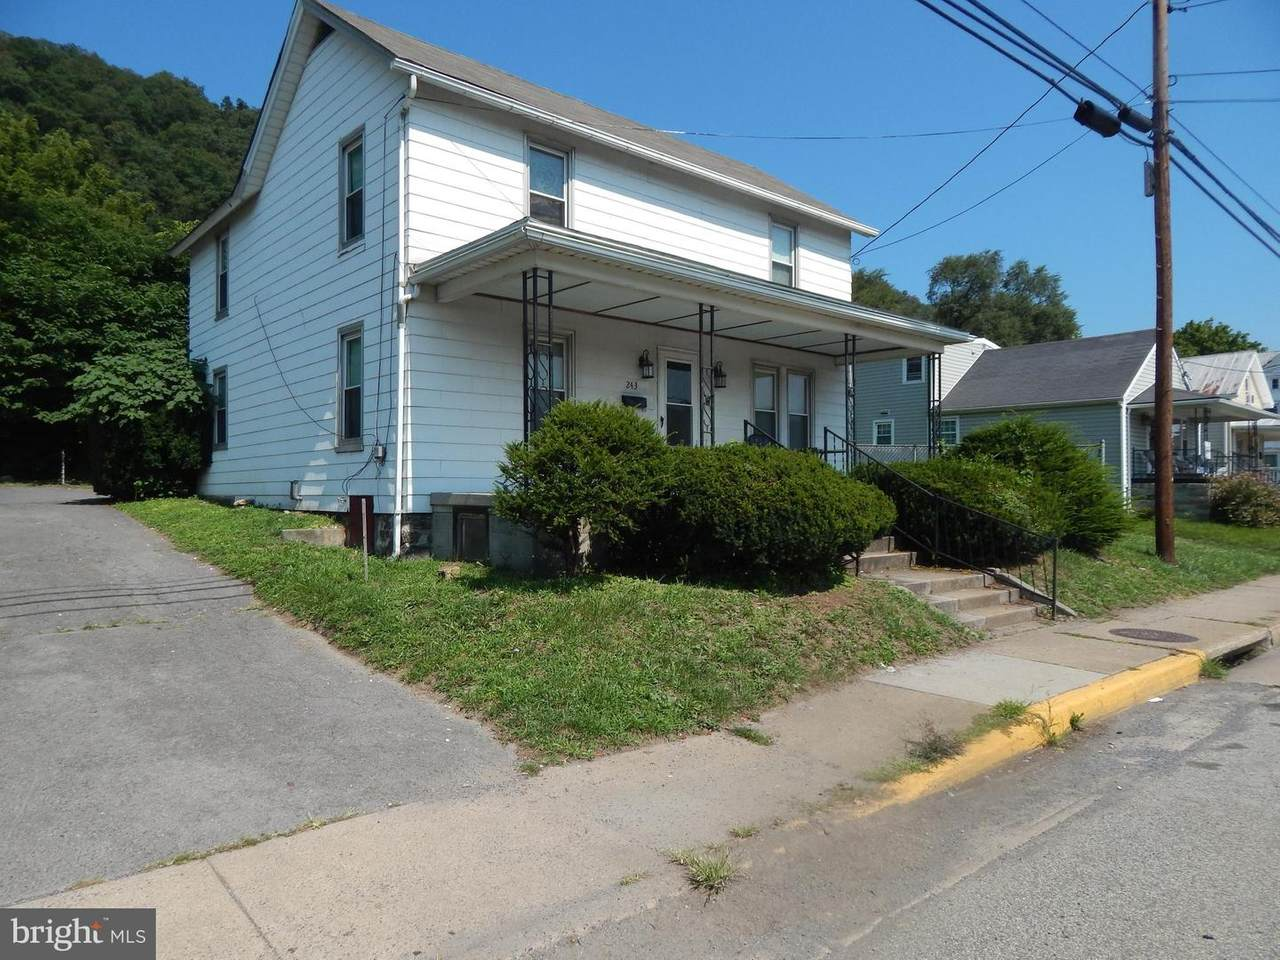 243 Washington Street - Photo 1